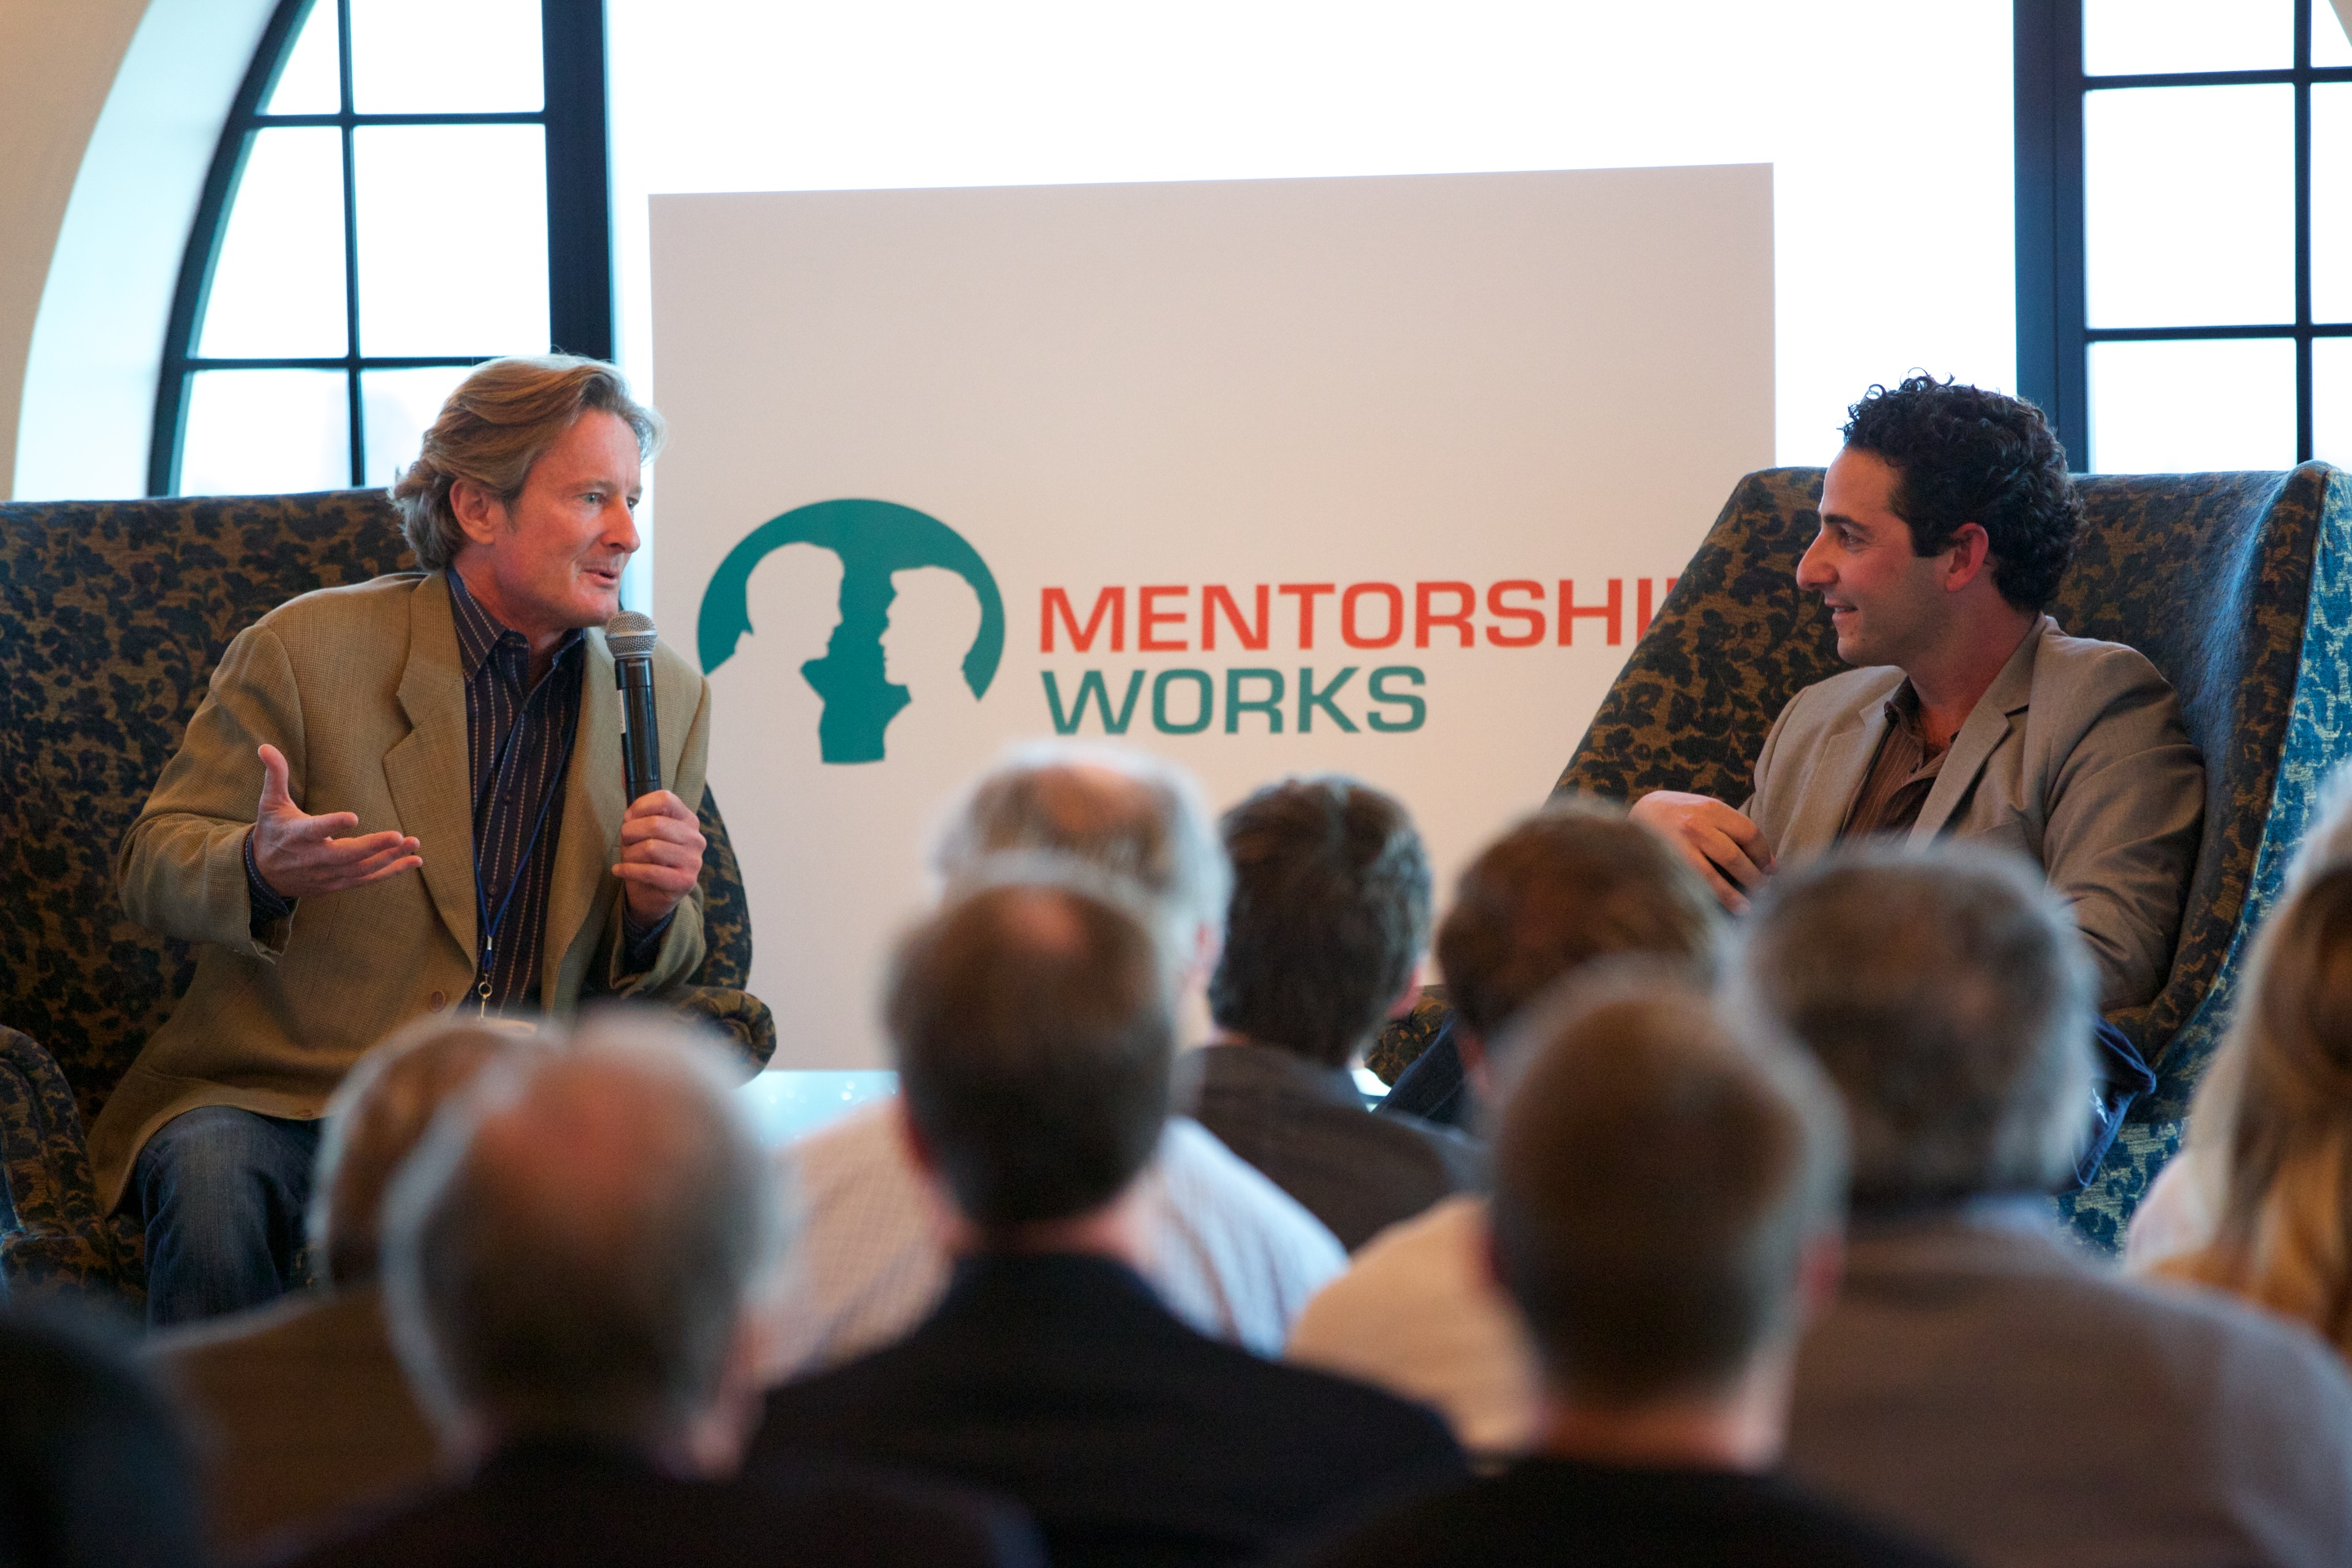 Mentorship Works Santa Barbara Business Advice